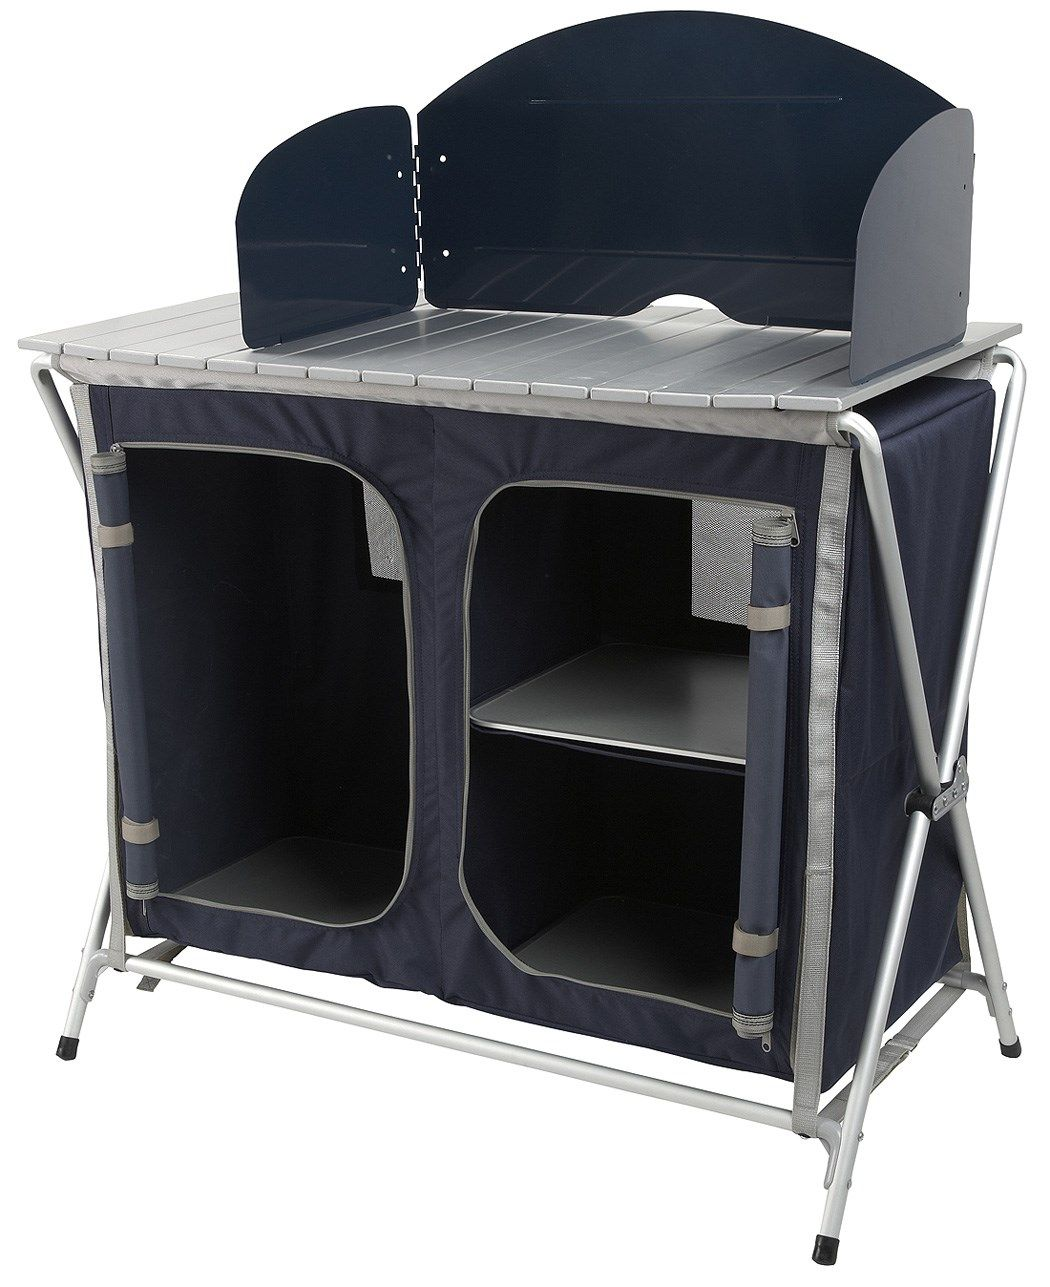 Camping Kitchen A Versatile Easily Assembled Kitchen Stand And Cupboard For